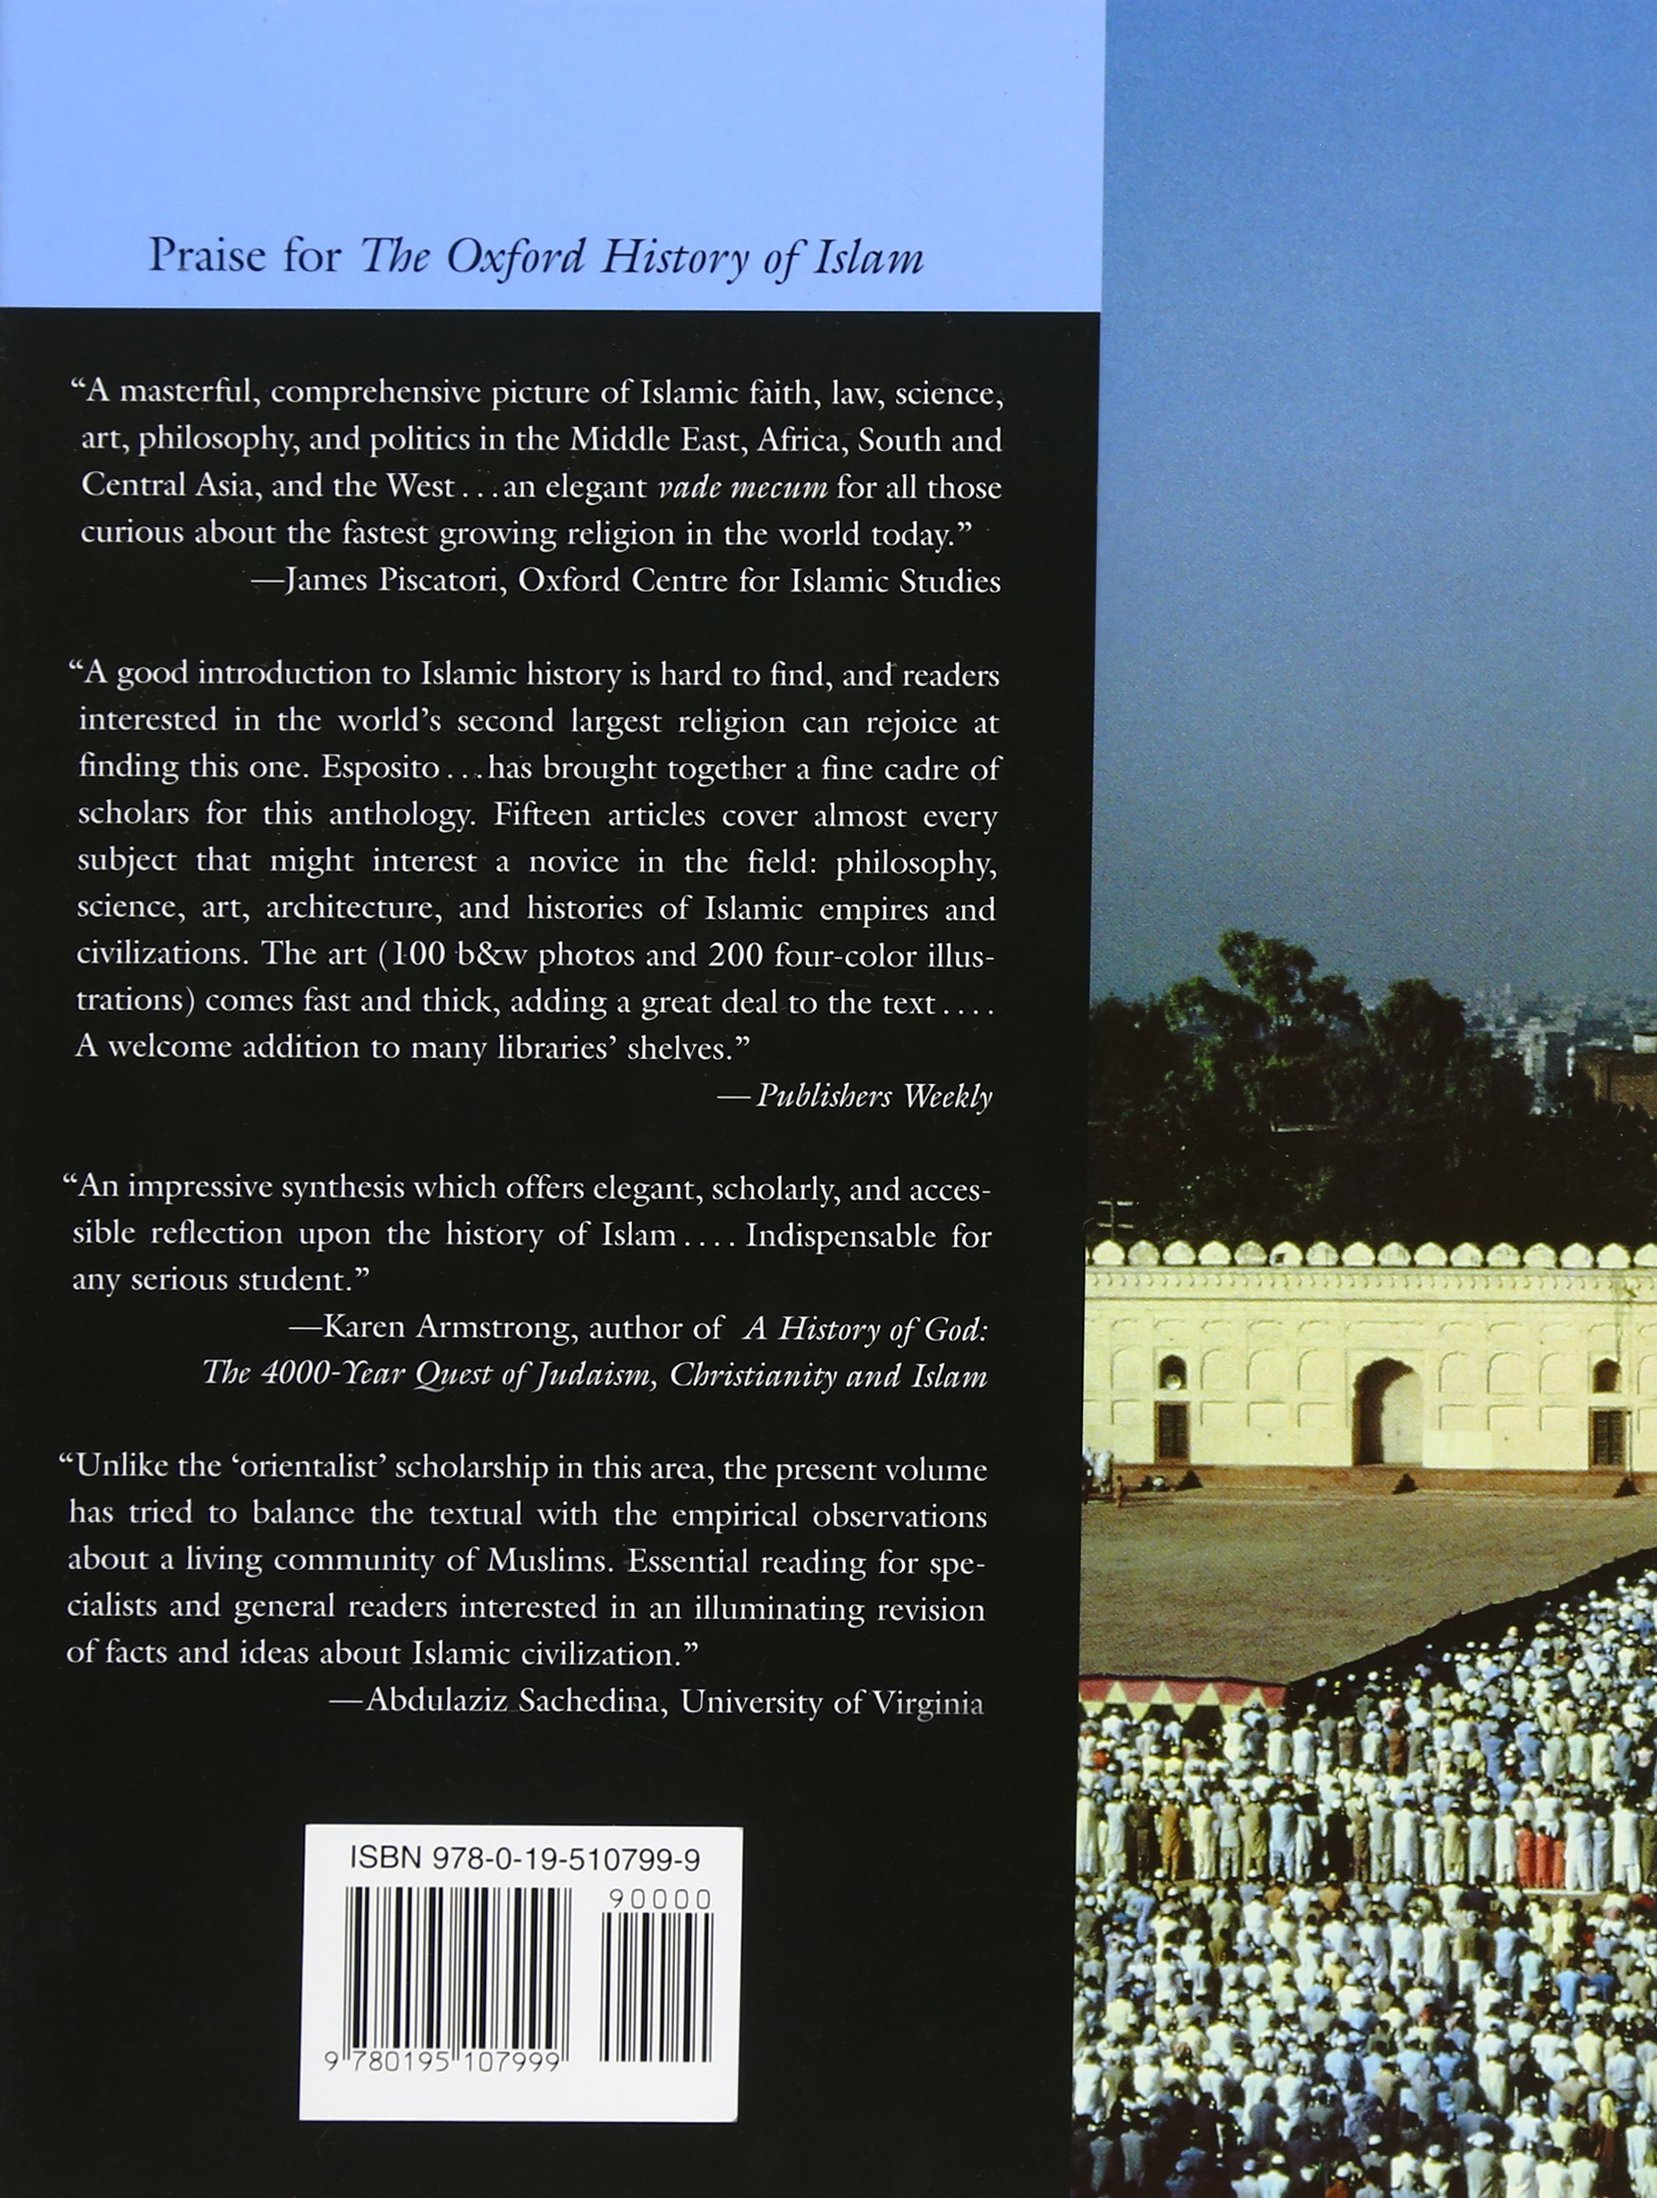 The Oxford History Of Islam: John L Esposito: 9780195107999: Amazon:  Books